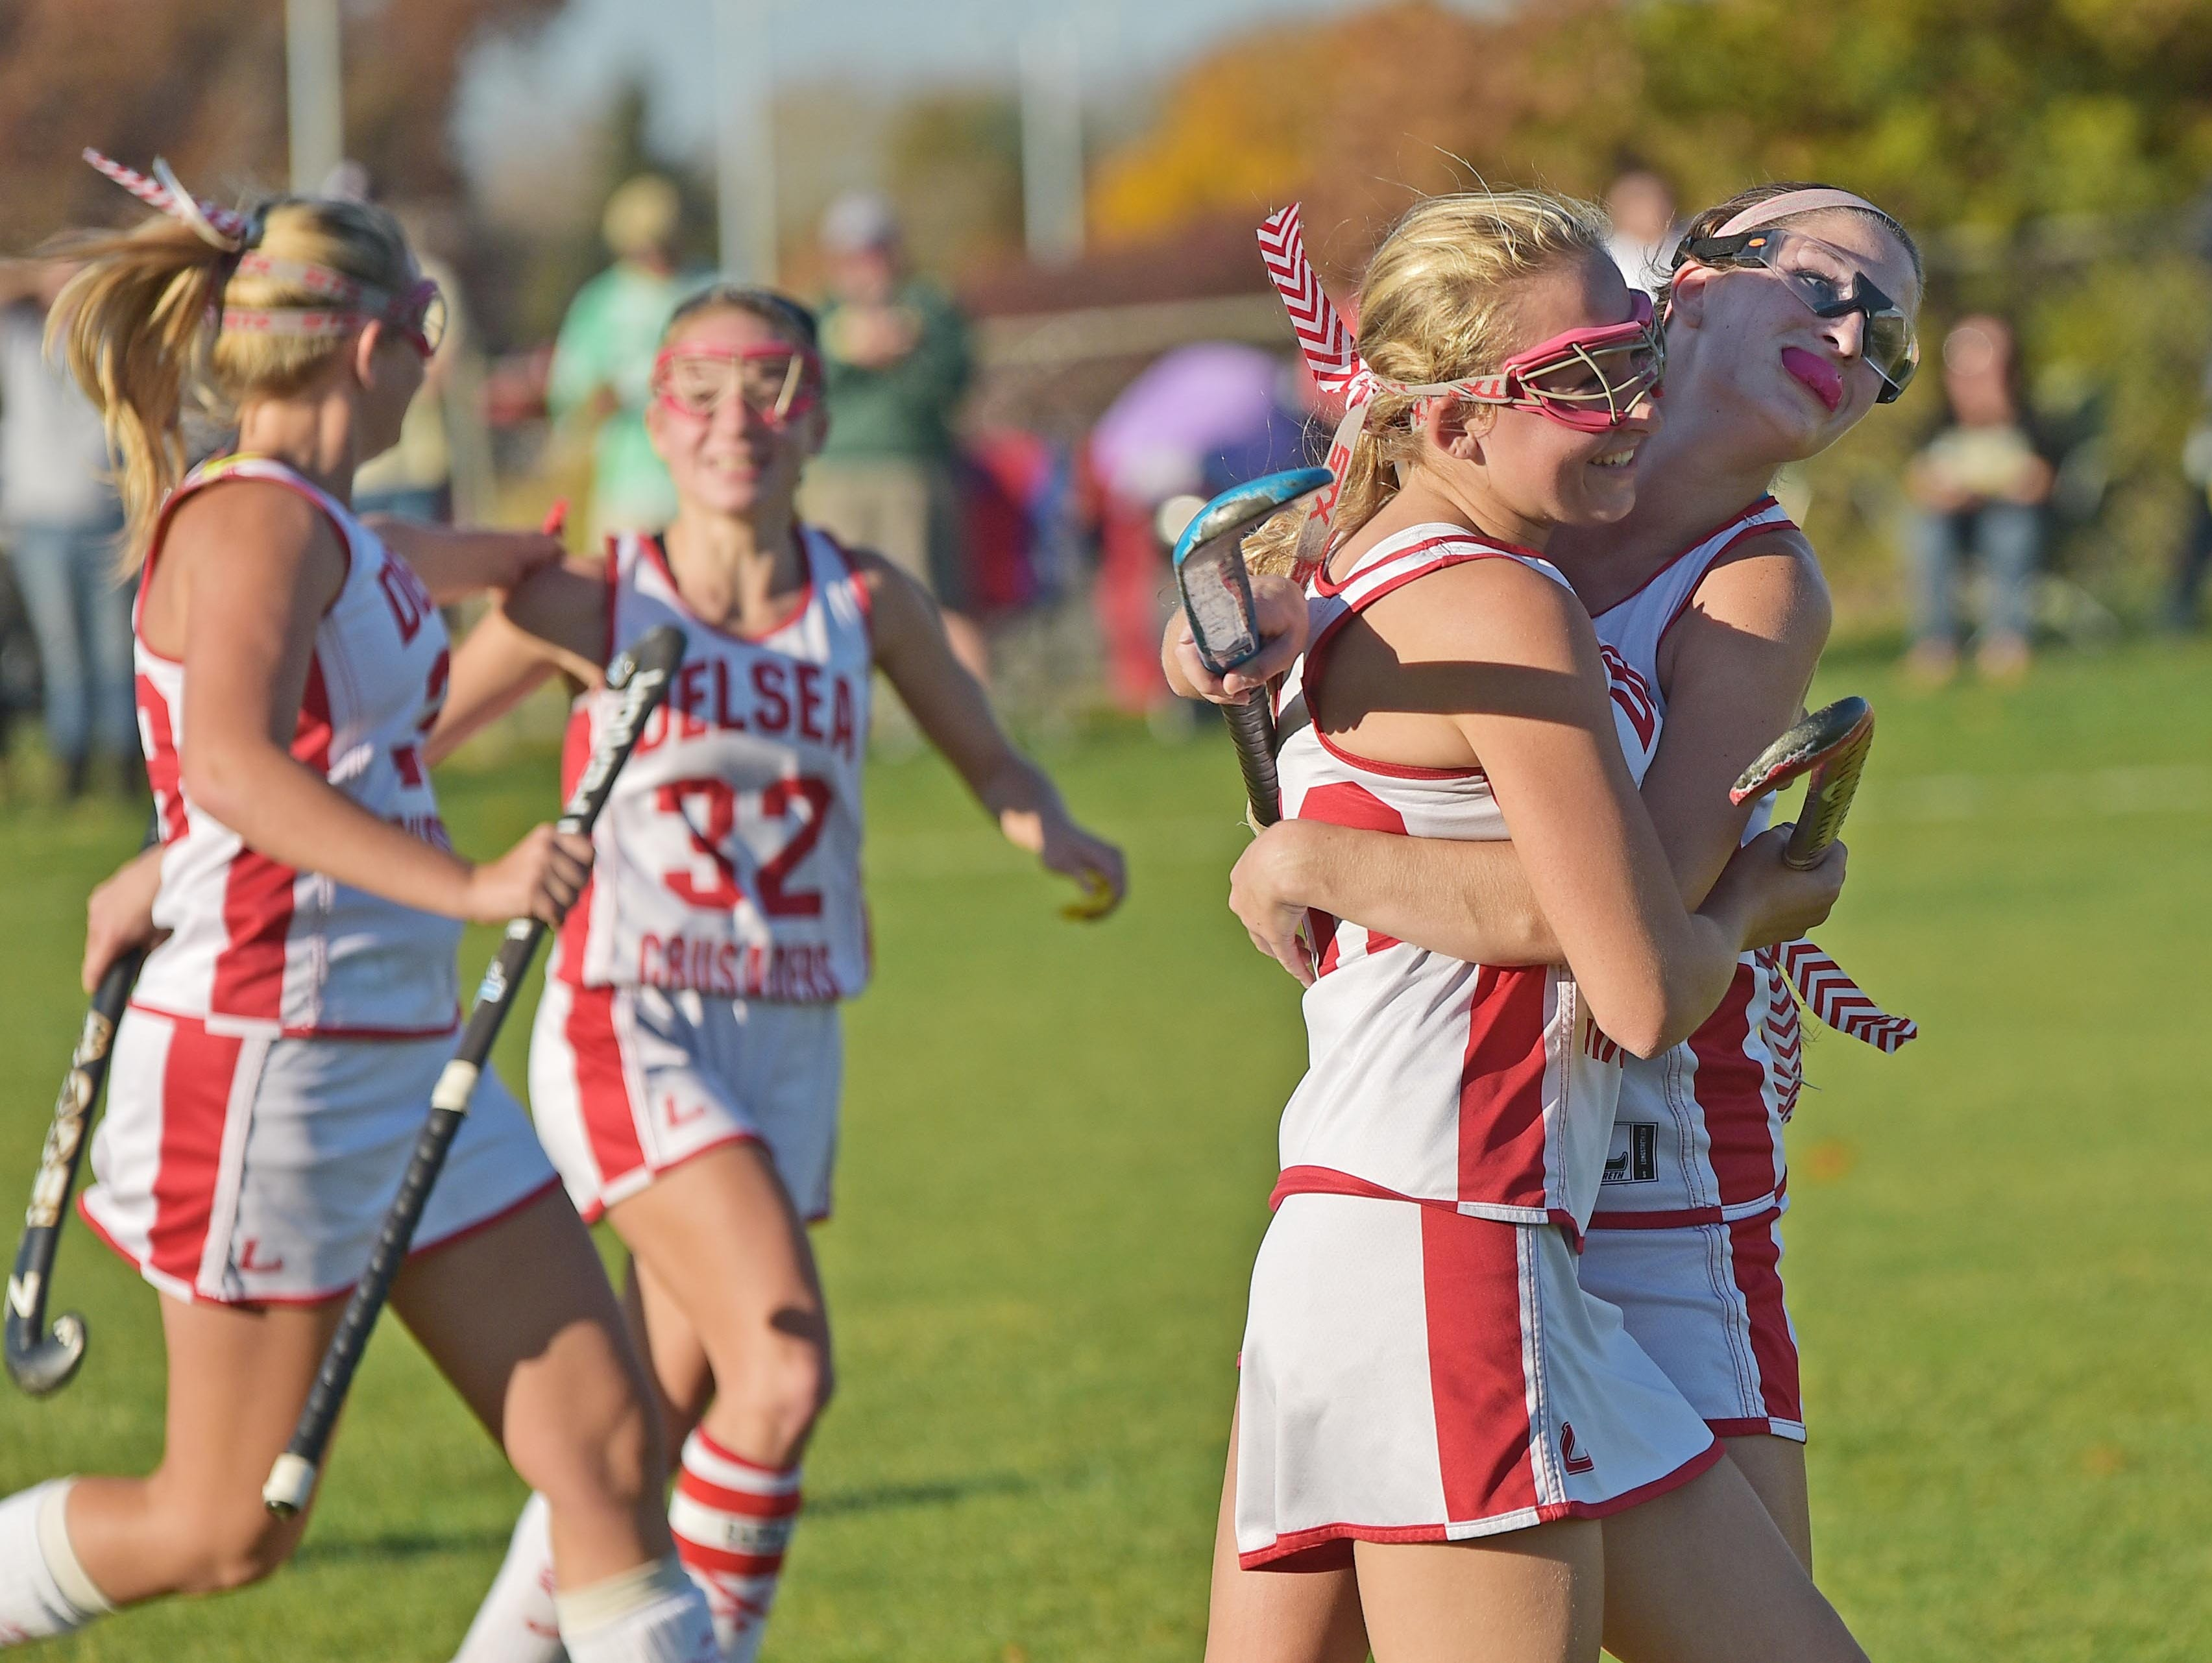 The Delsea Regional High School field hockey team celebrates after defeating Pinelands 3-0 in the Group II South semifinals on Wednesday.